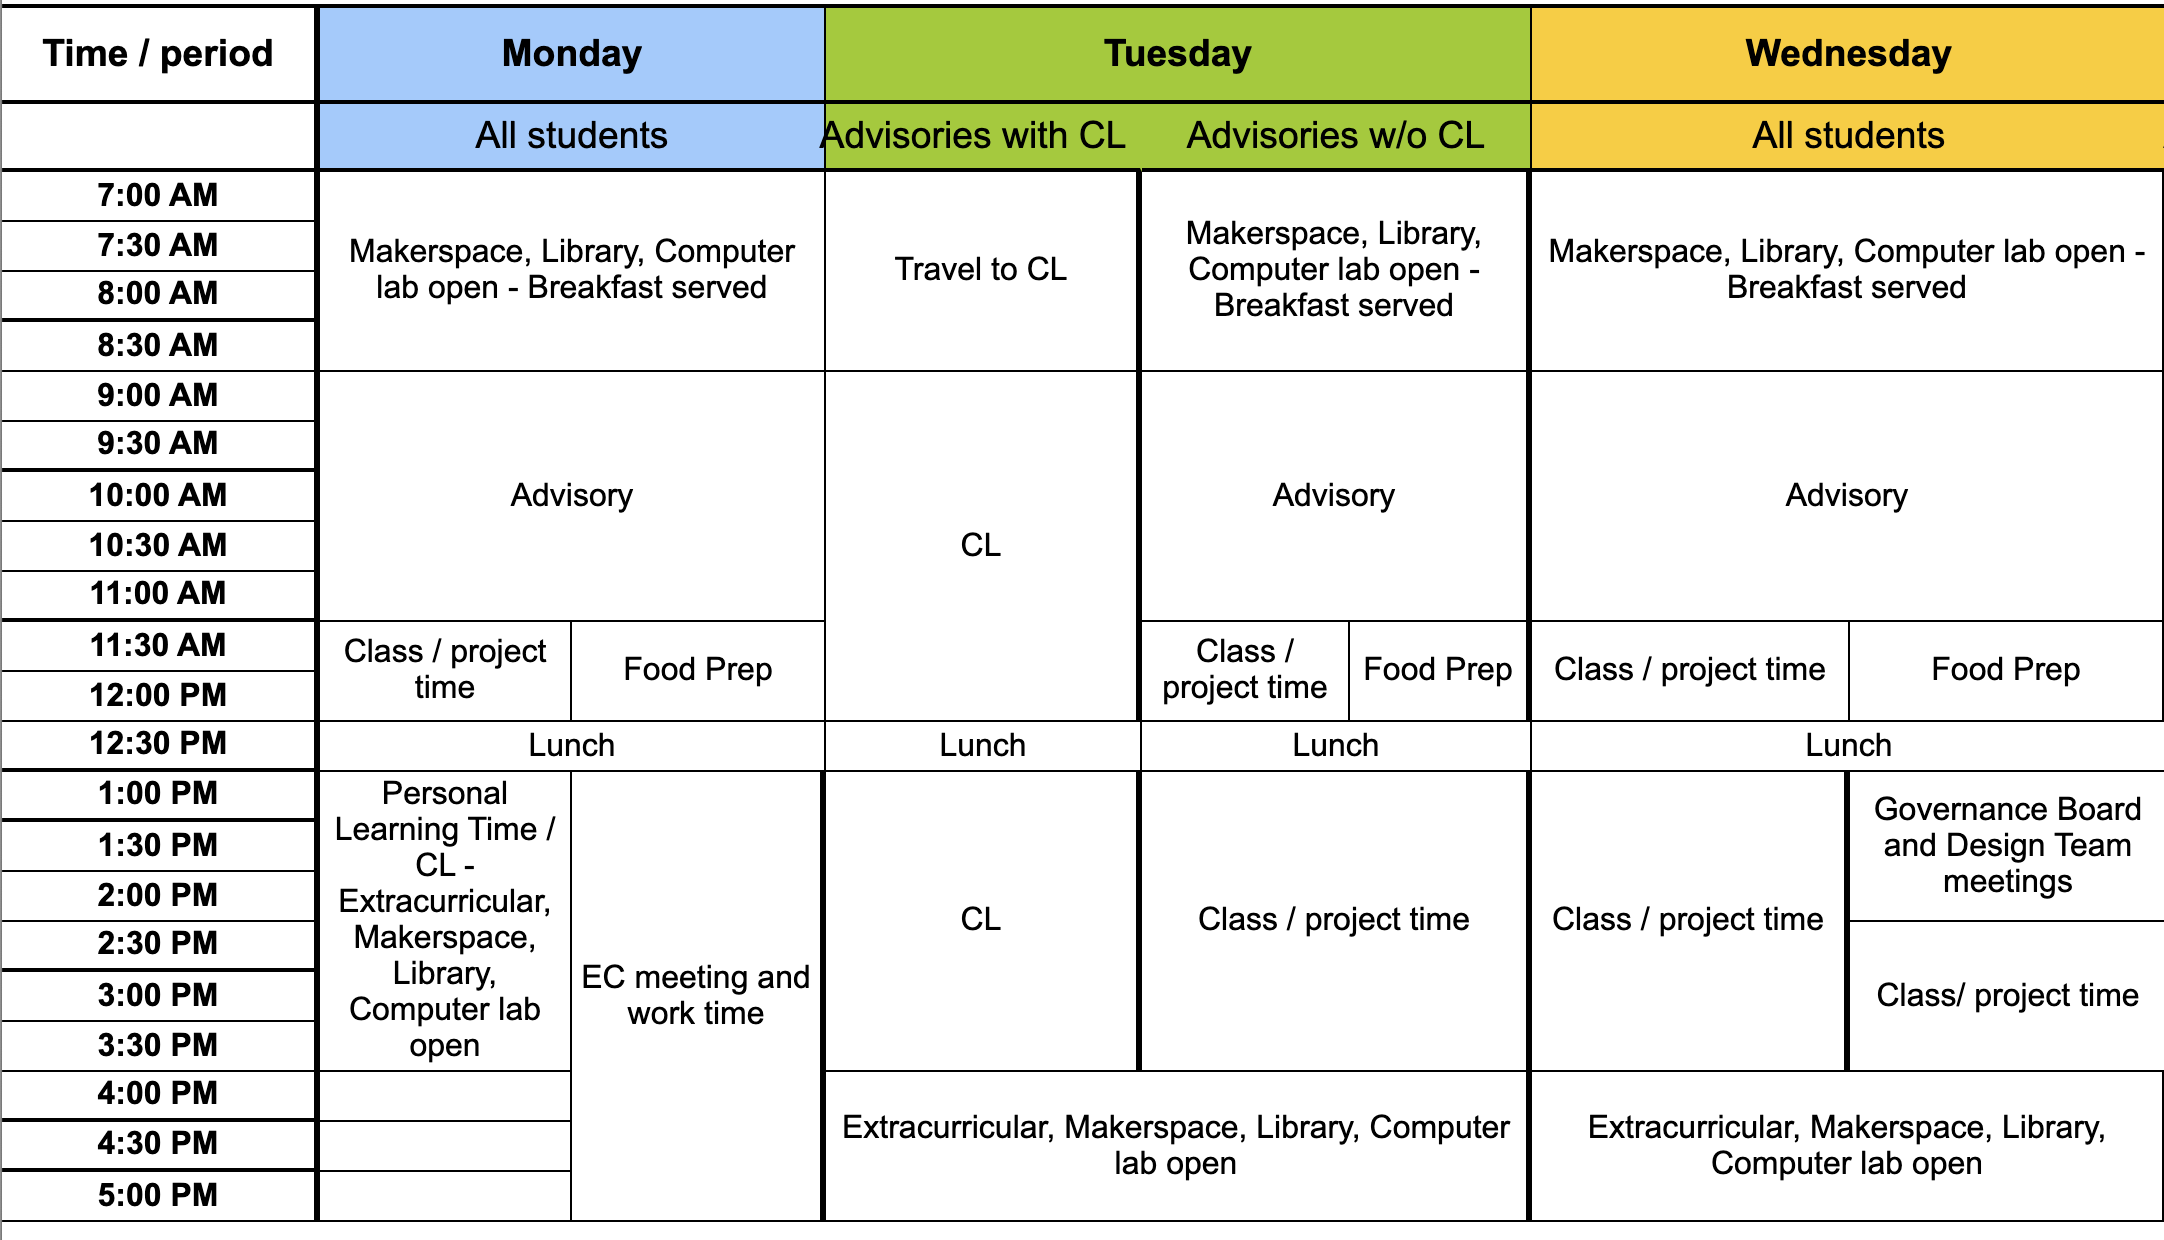 Milestone Democratic School weekly schedule showing Monday through Wednesday, 7 a.m. until 5 p.m. It includes advisory session and student work/learning time.